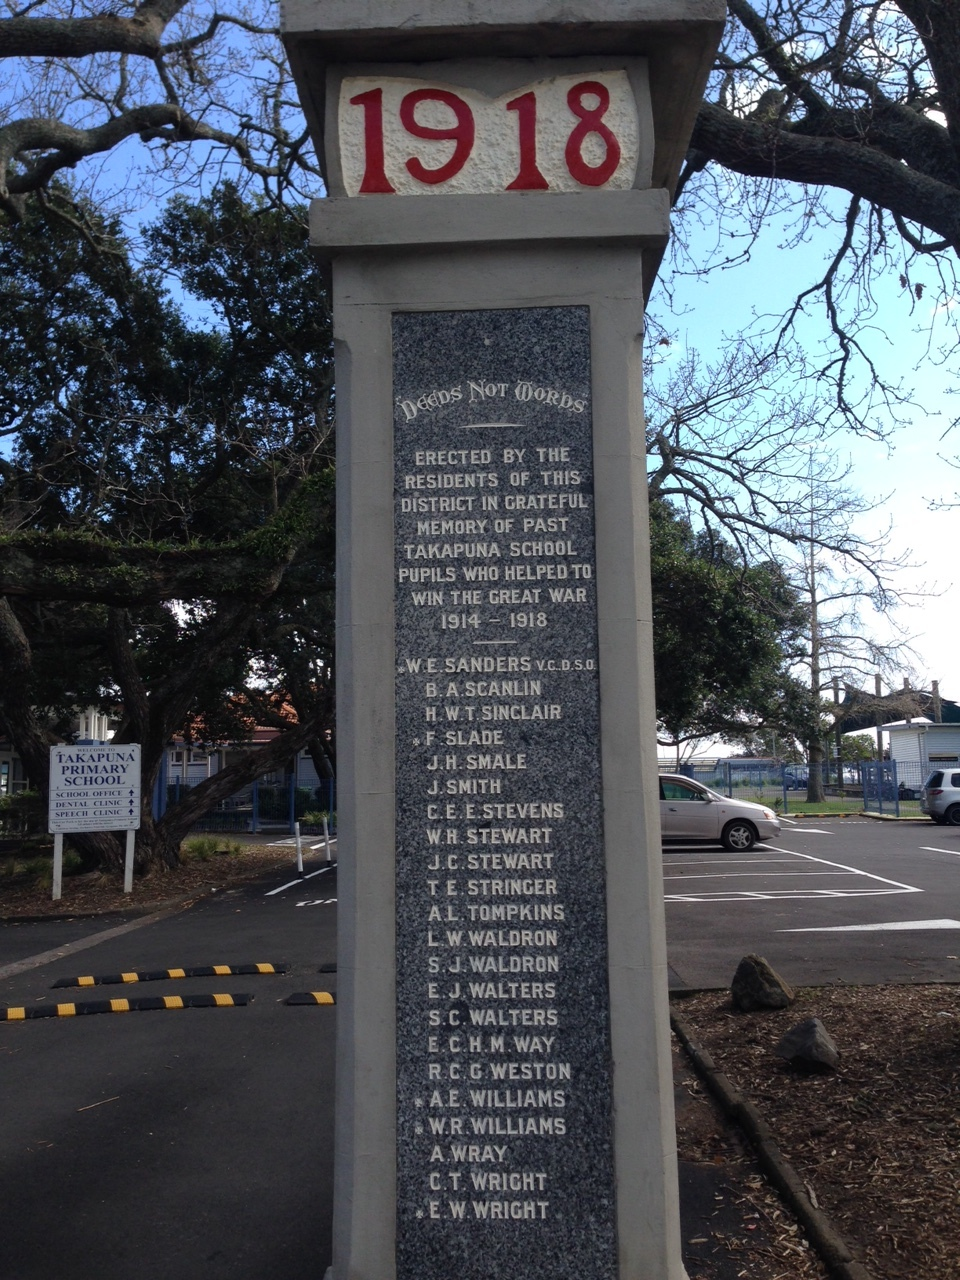 Takapuna School  - The Walking with an Anzac Team found the first clue in Athol's story when they visited Takapuna School.  The first thing that greets visitors to the school are the impressive memorial gates, where Athol's name is listed.   Further research on the same platforms you have used today allowed us to discover Athol's Story.